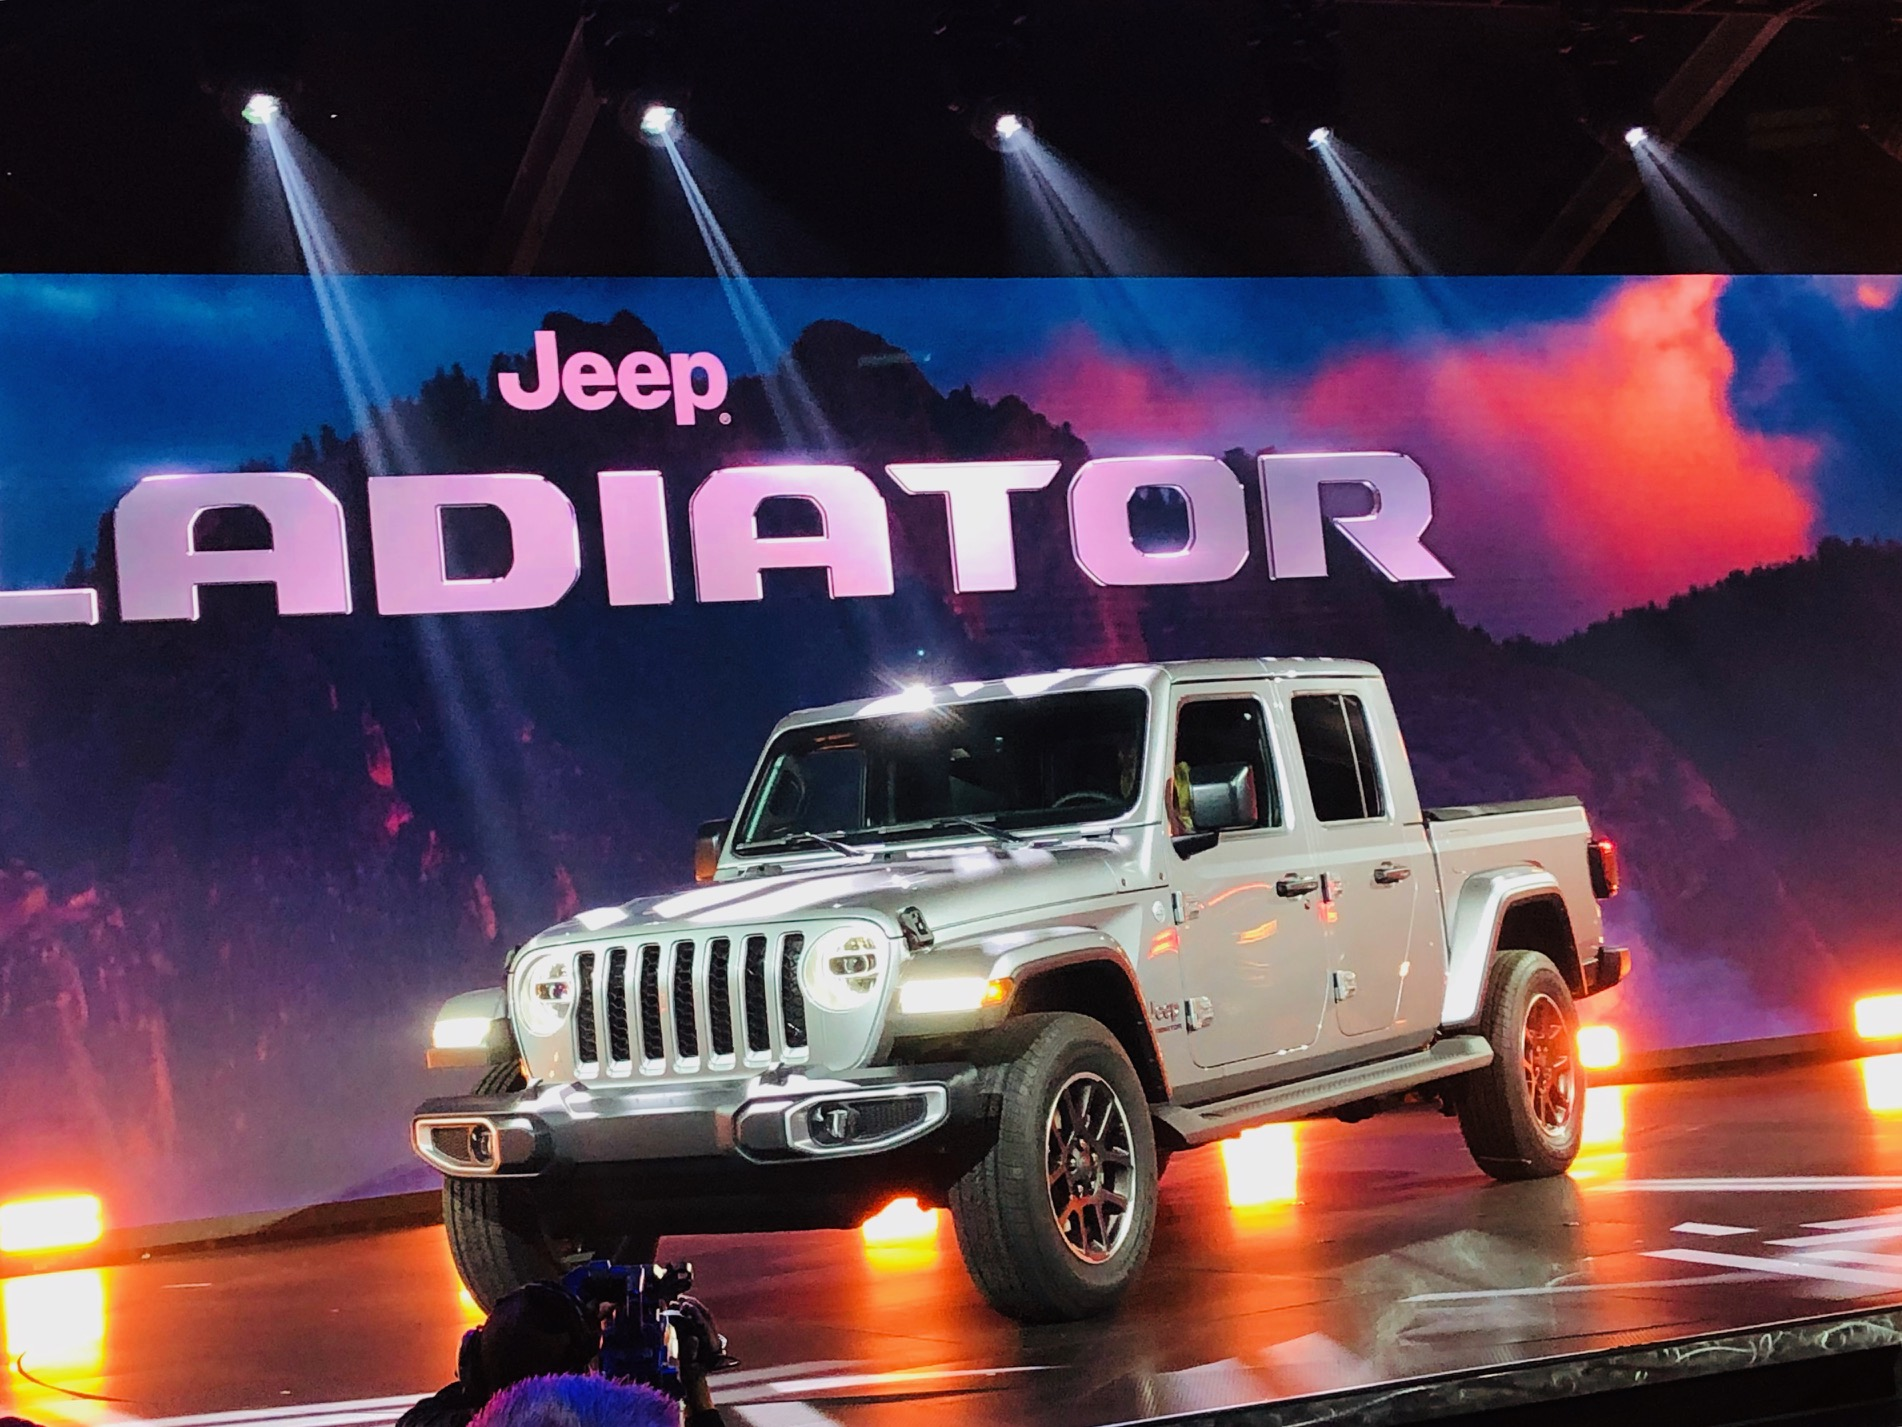 The 2020 Jeep Gladiator truck made its debut at the LA Auto Show on Wednesday. Photo by Keith Turner.